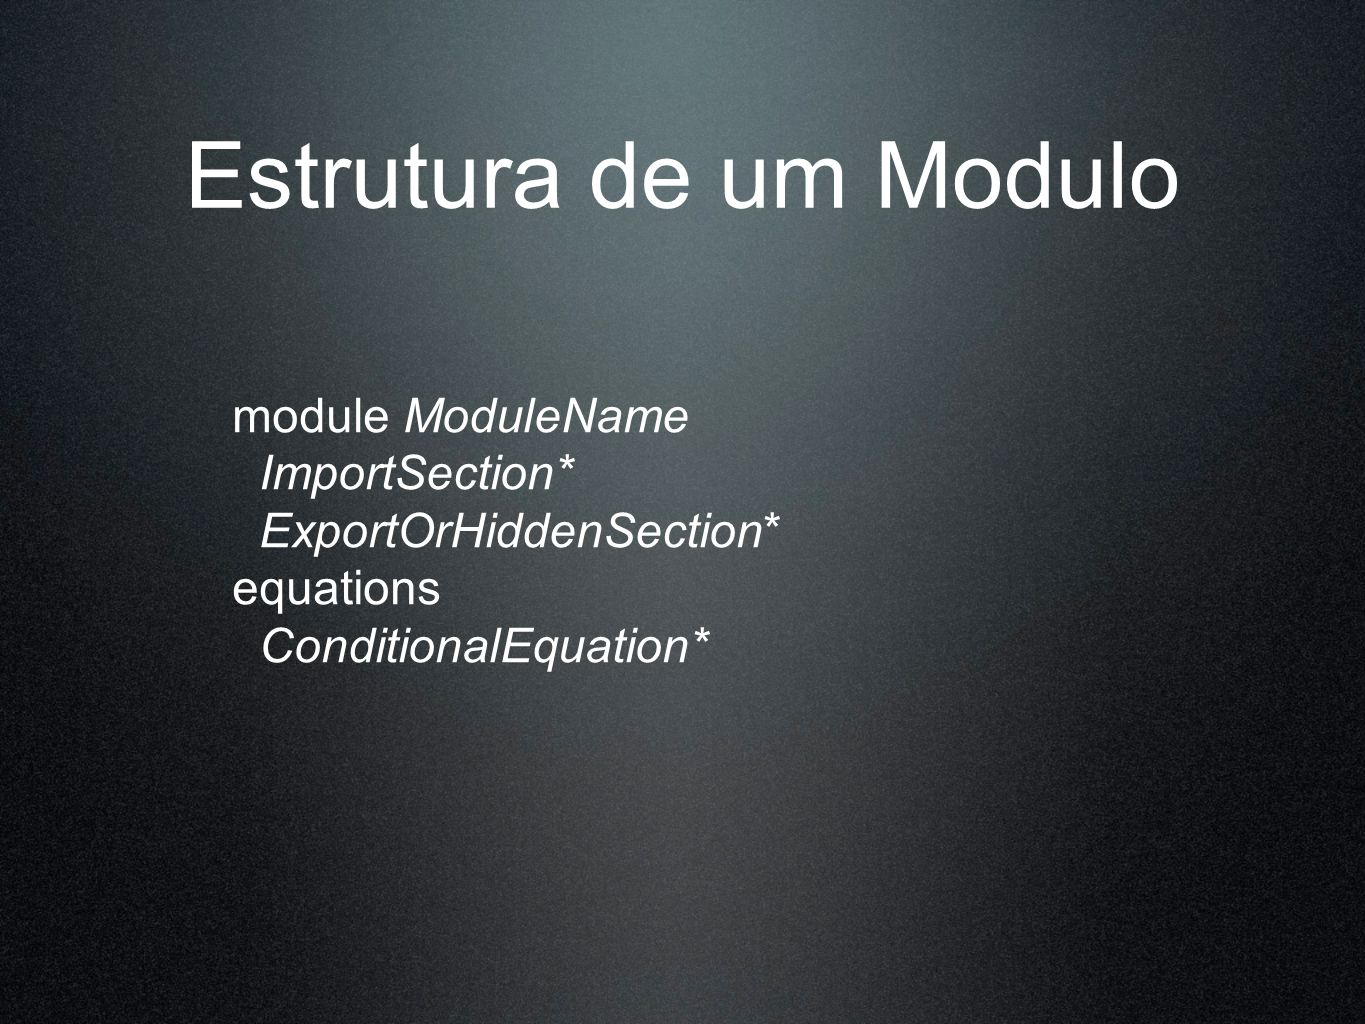 Estrutura de um Modulo module ModuleName ImportSection* ExportOrHiddenSection* equations ConditionalEquation*